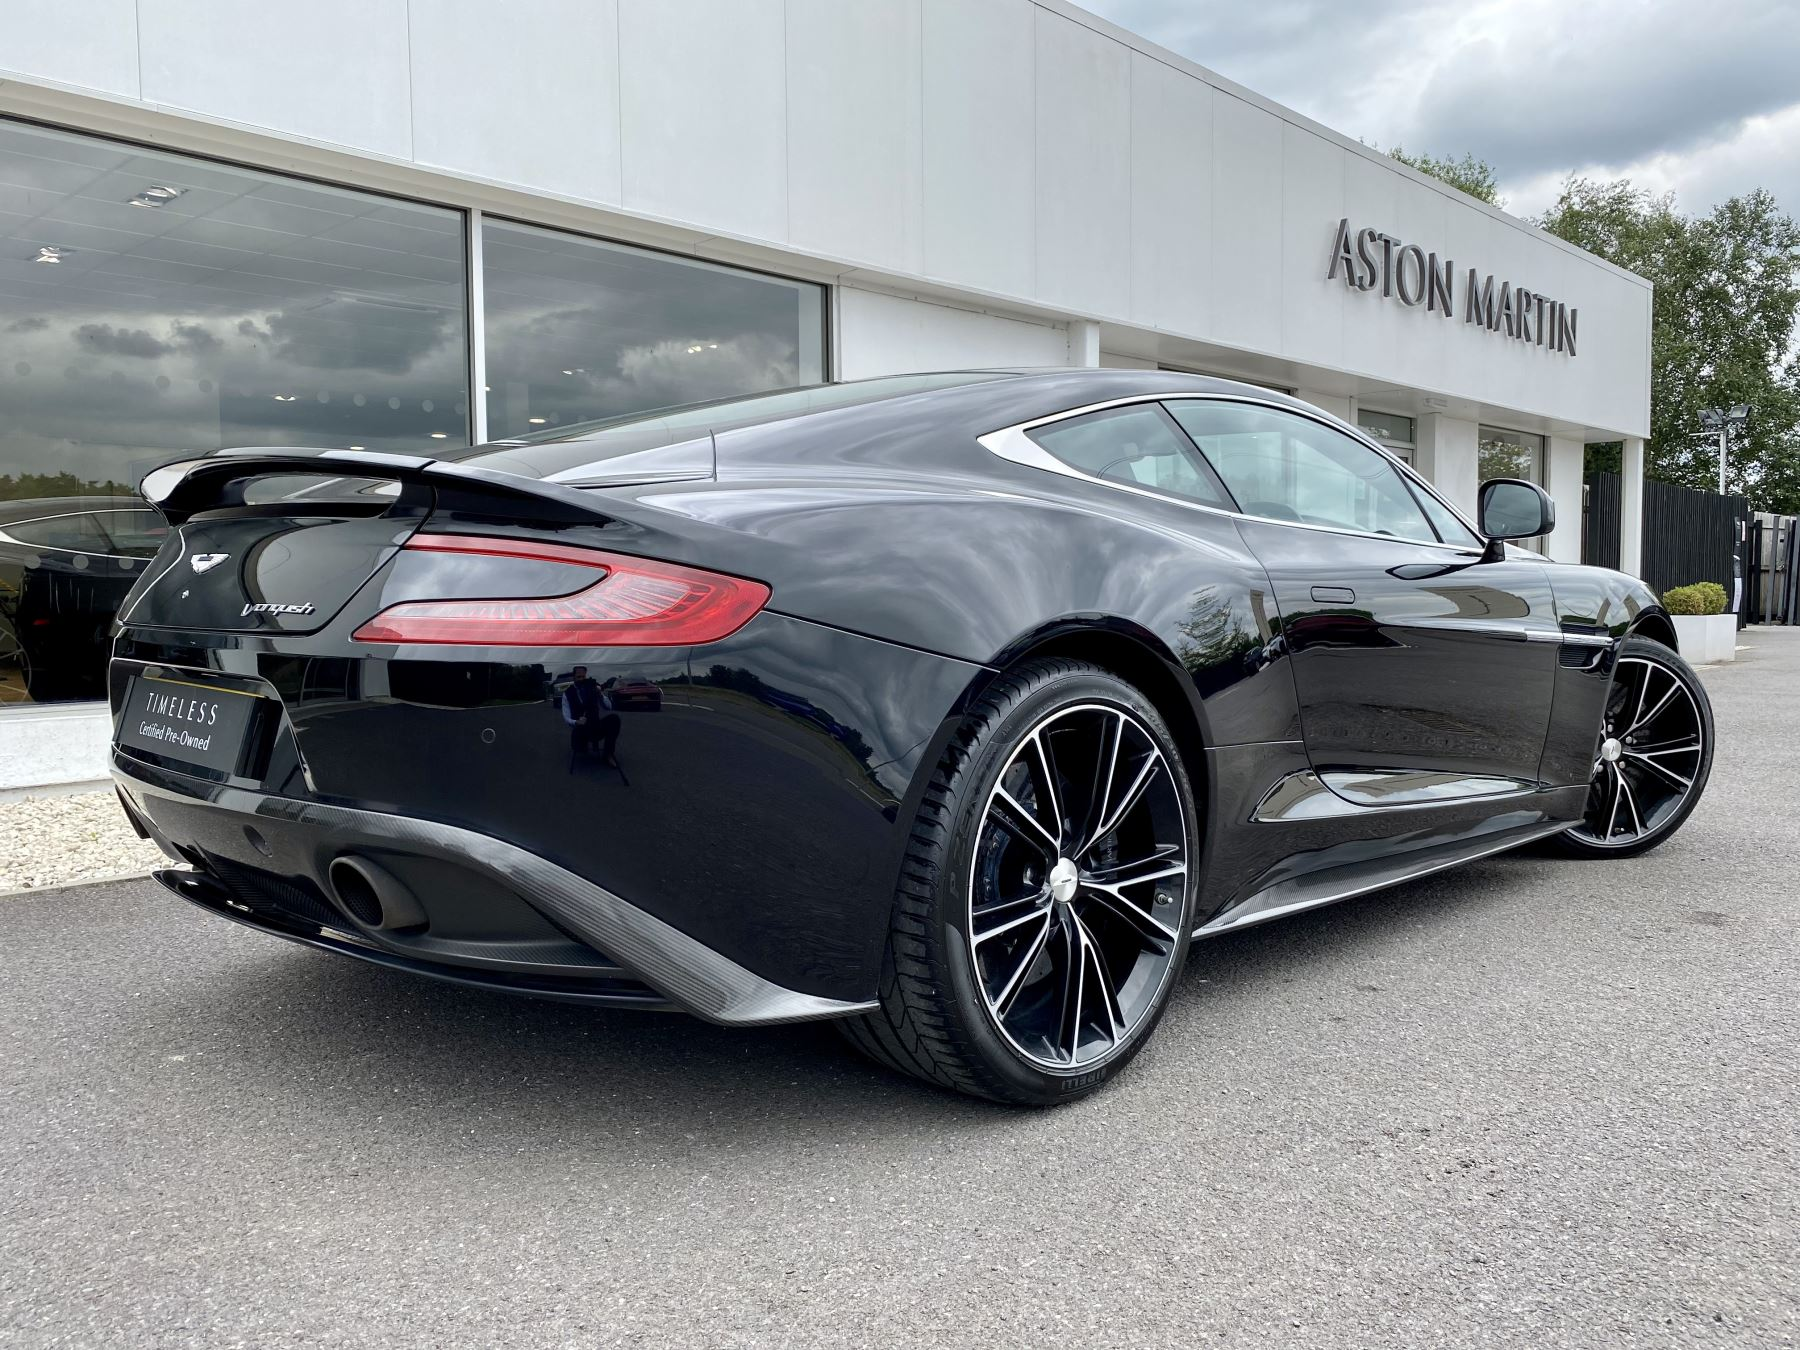 Aston Martin Vanquish V12 [568] 2+2 2dr Touchtronic 3 8 Speed, 2 Owners From New, Onyx Black, Bang And Olufsen. image 7